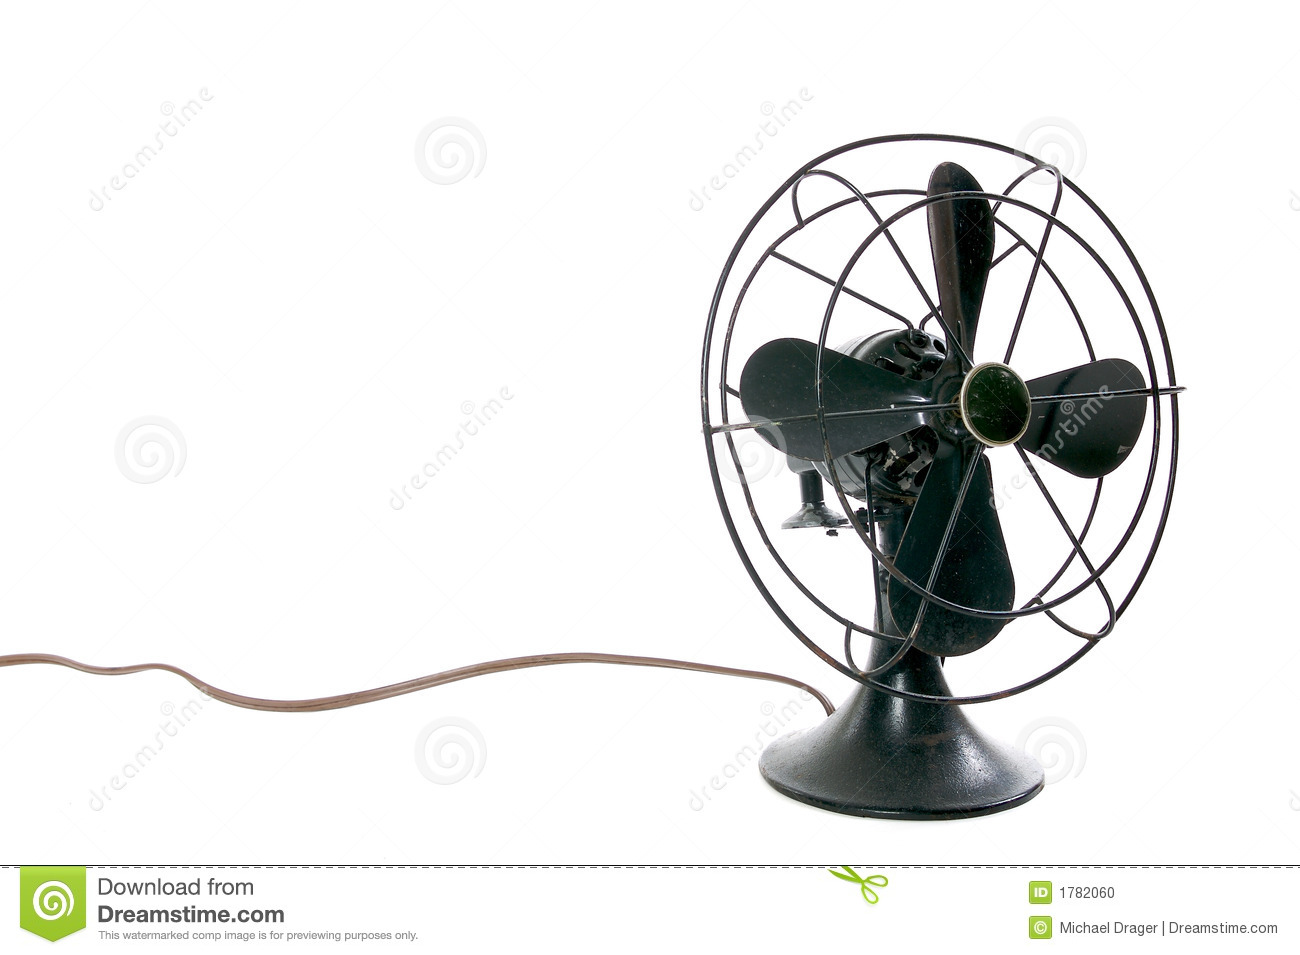 Vintage Fan vintage fan stock photo - image: 1782060